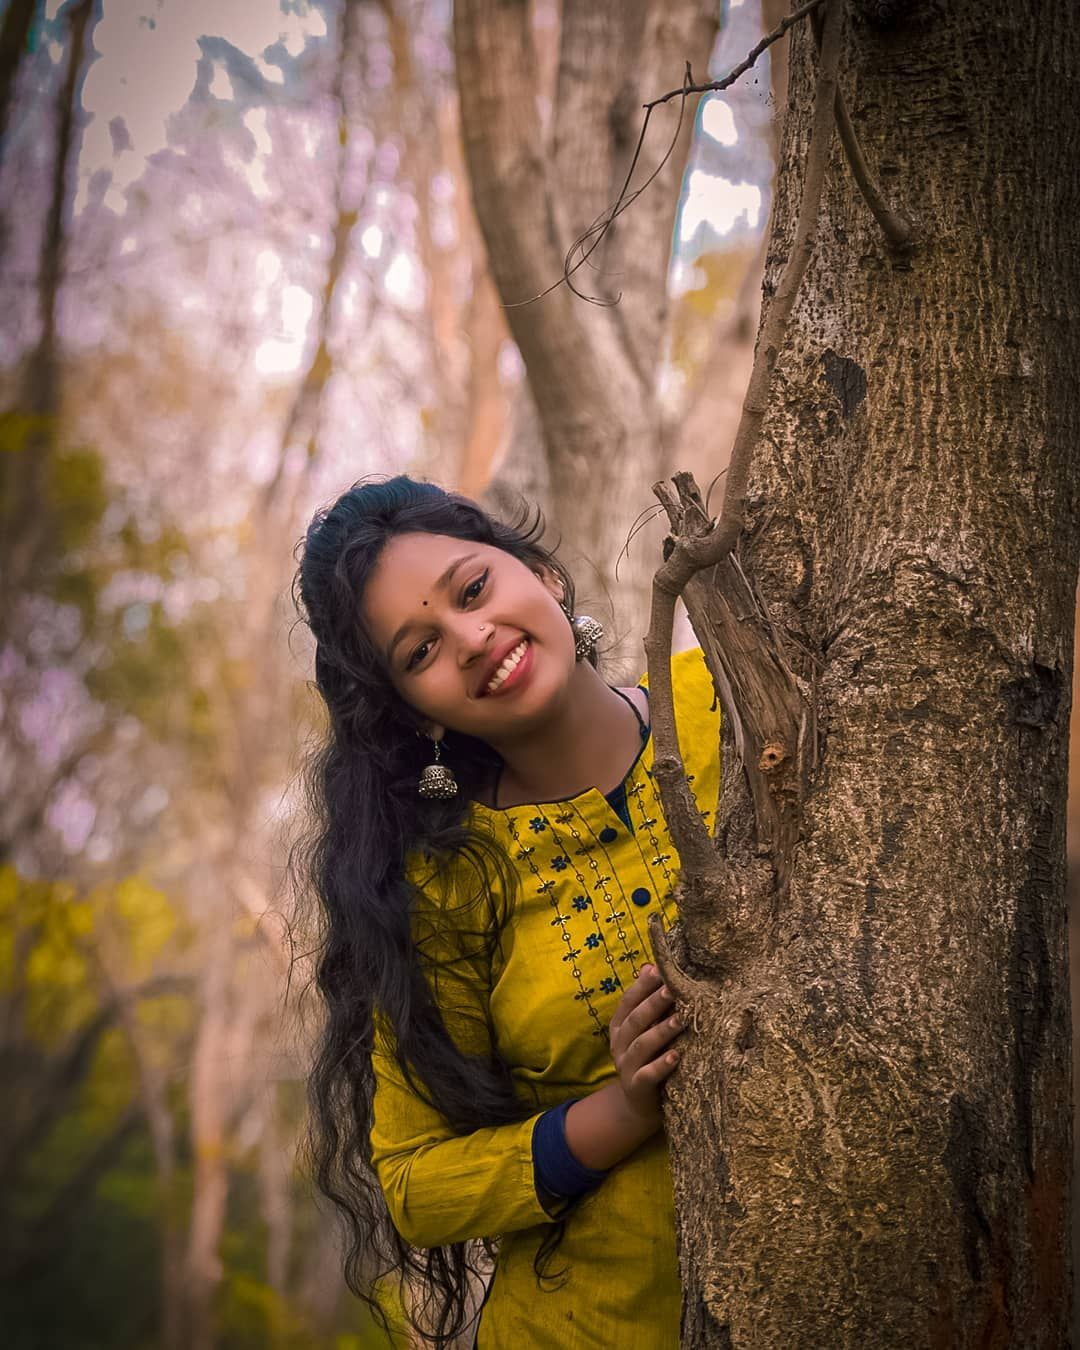 Dwell on the beauty of life. Love nature, love people, and be happy. 💁 . .#style #fashion #hair #hairstyle #instahair #hairstyles #haircolour #haircolor #hairdye #hairdo #haircut #longhairdontcare #braid #instafashion #straighthair #longhair #captionplus #curlyhair #brown #blonde #brunette #hairoftheday #braidideas #hairideas #hairfashion #perfectcurls #hairofinstagram #coolhair